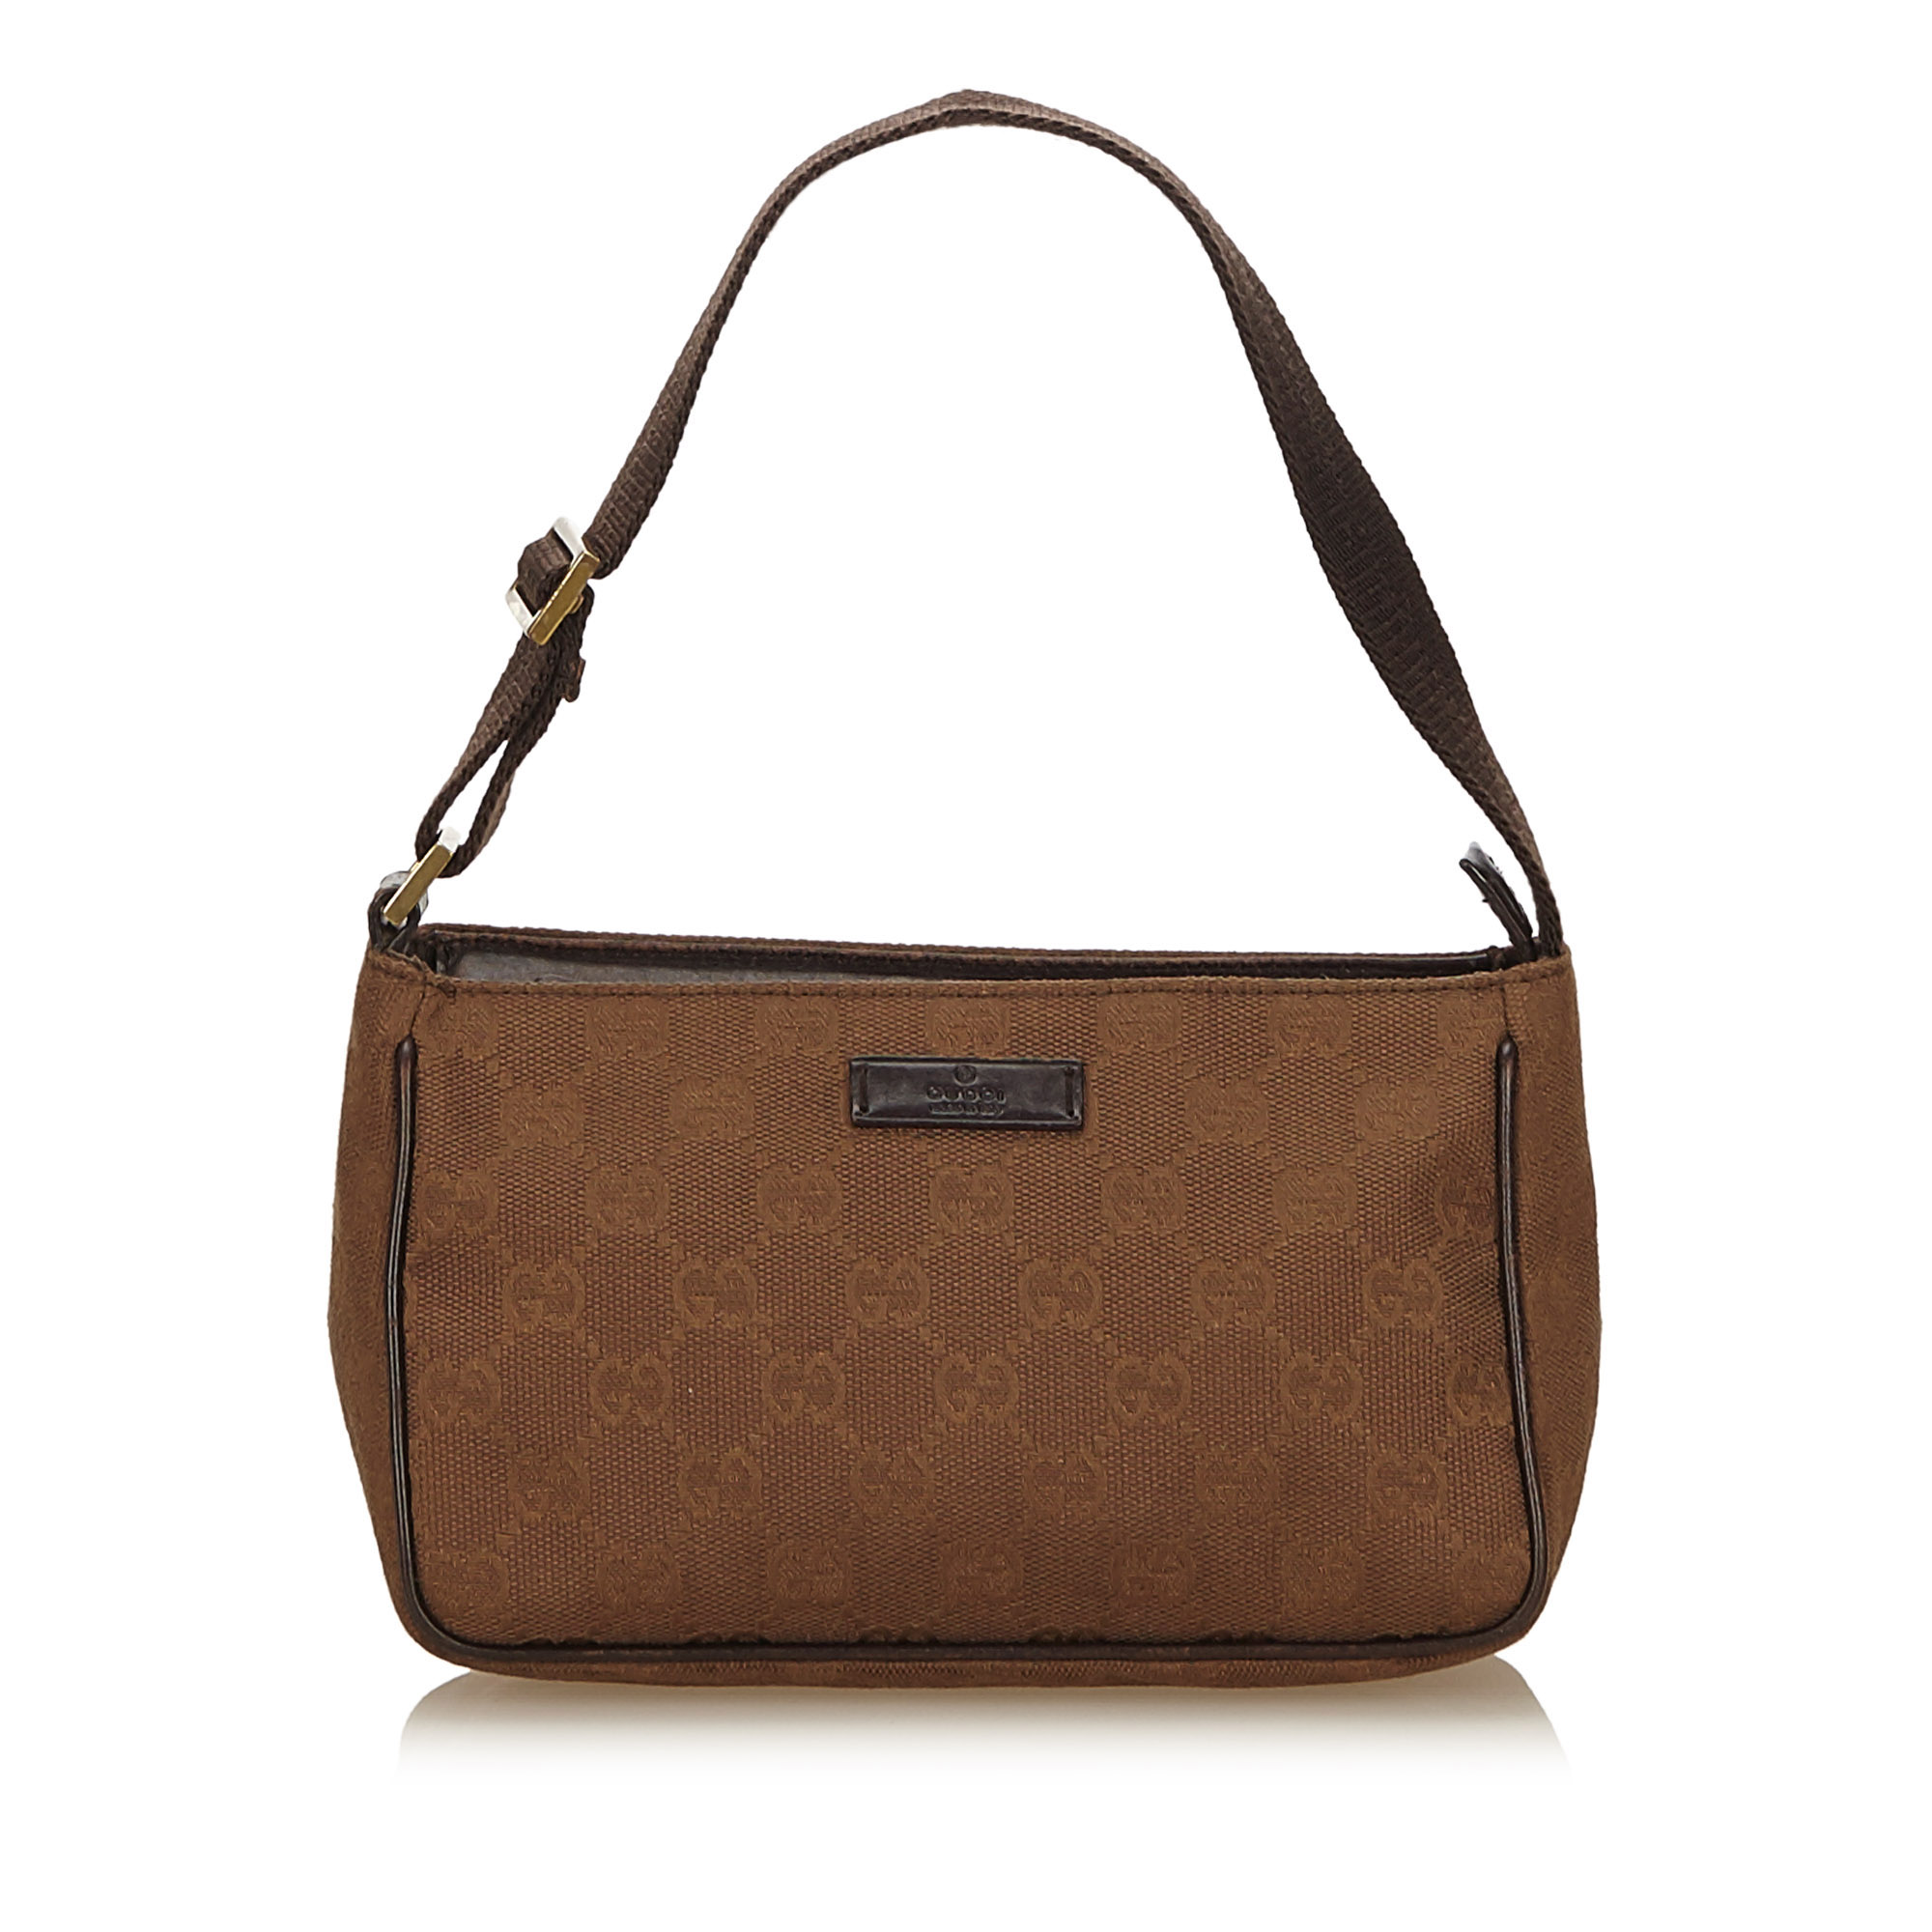 6ce6fe8e77dbd6 Image is loading Pre-Loved-Gucci-Brown-Jacquard-Fabric-Guccissima-Baguette-